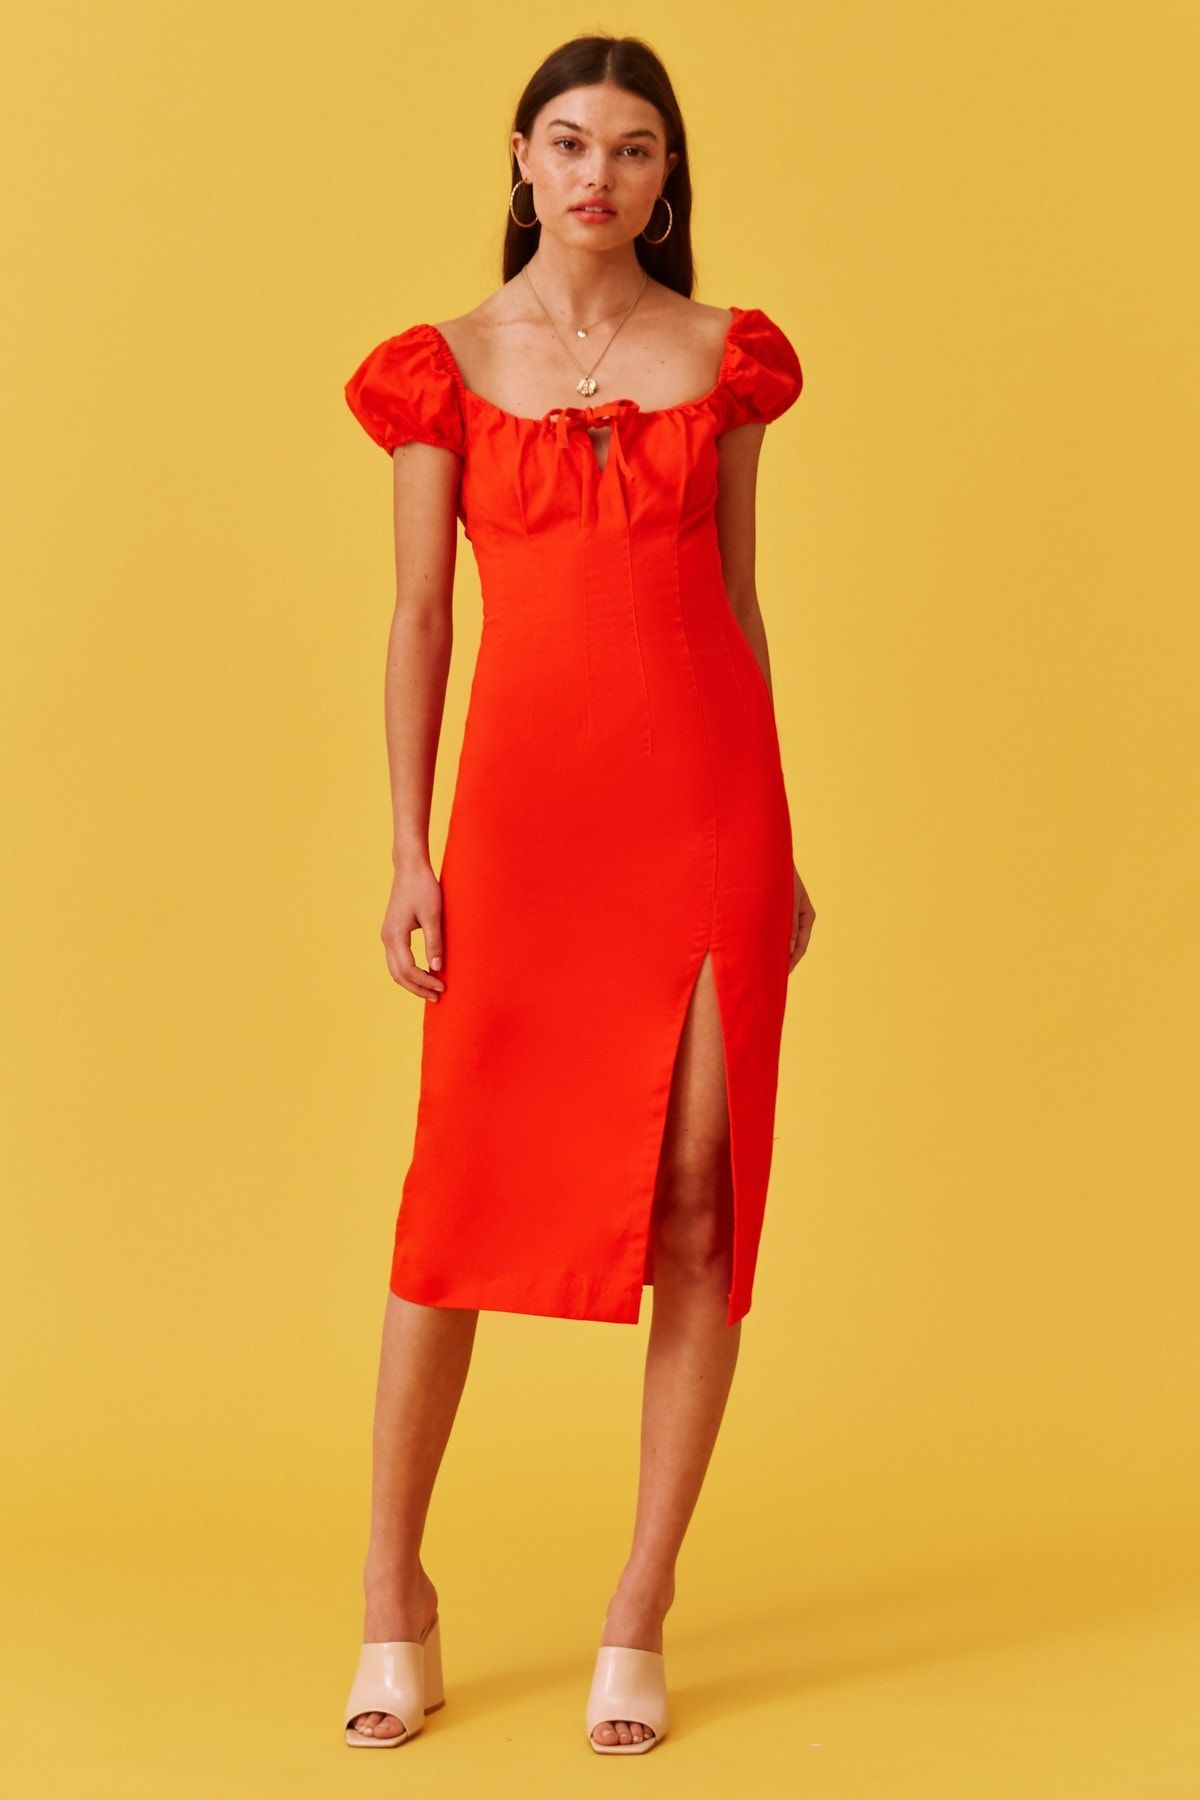 Tutti Frutti Dress Ivory In 2020 Red Dress Dresses Women Dress Online